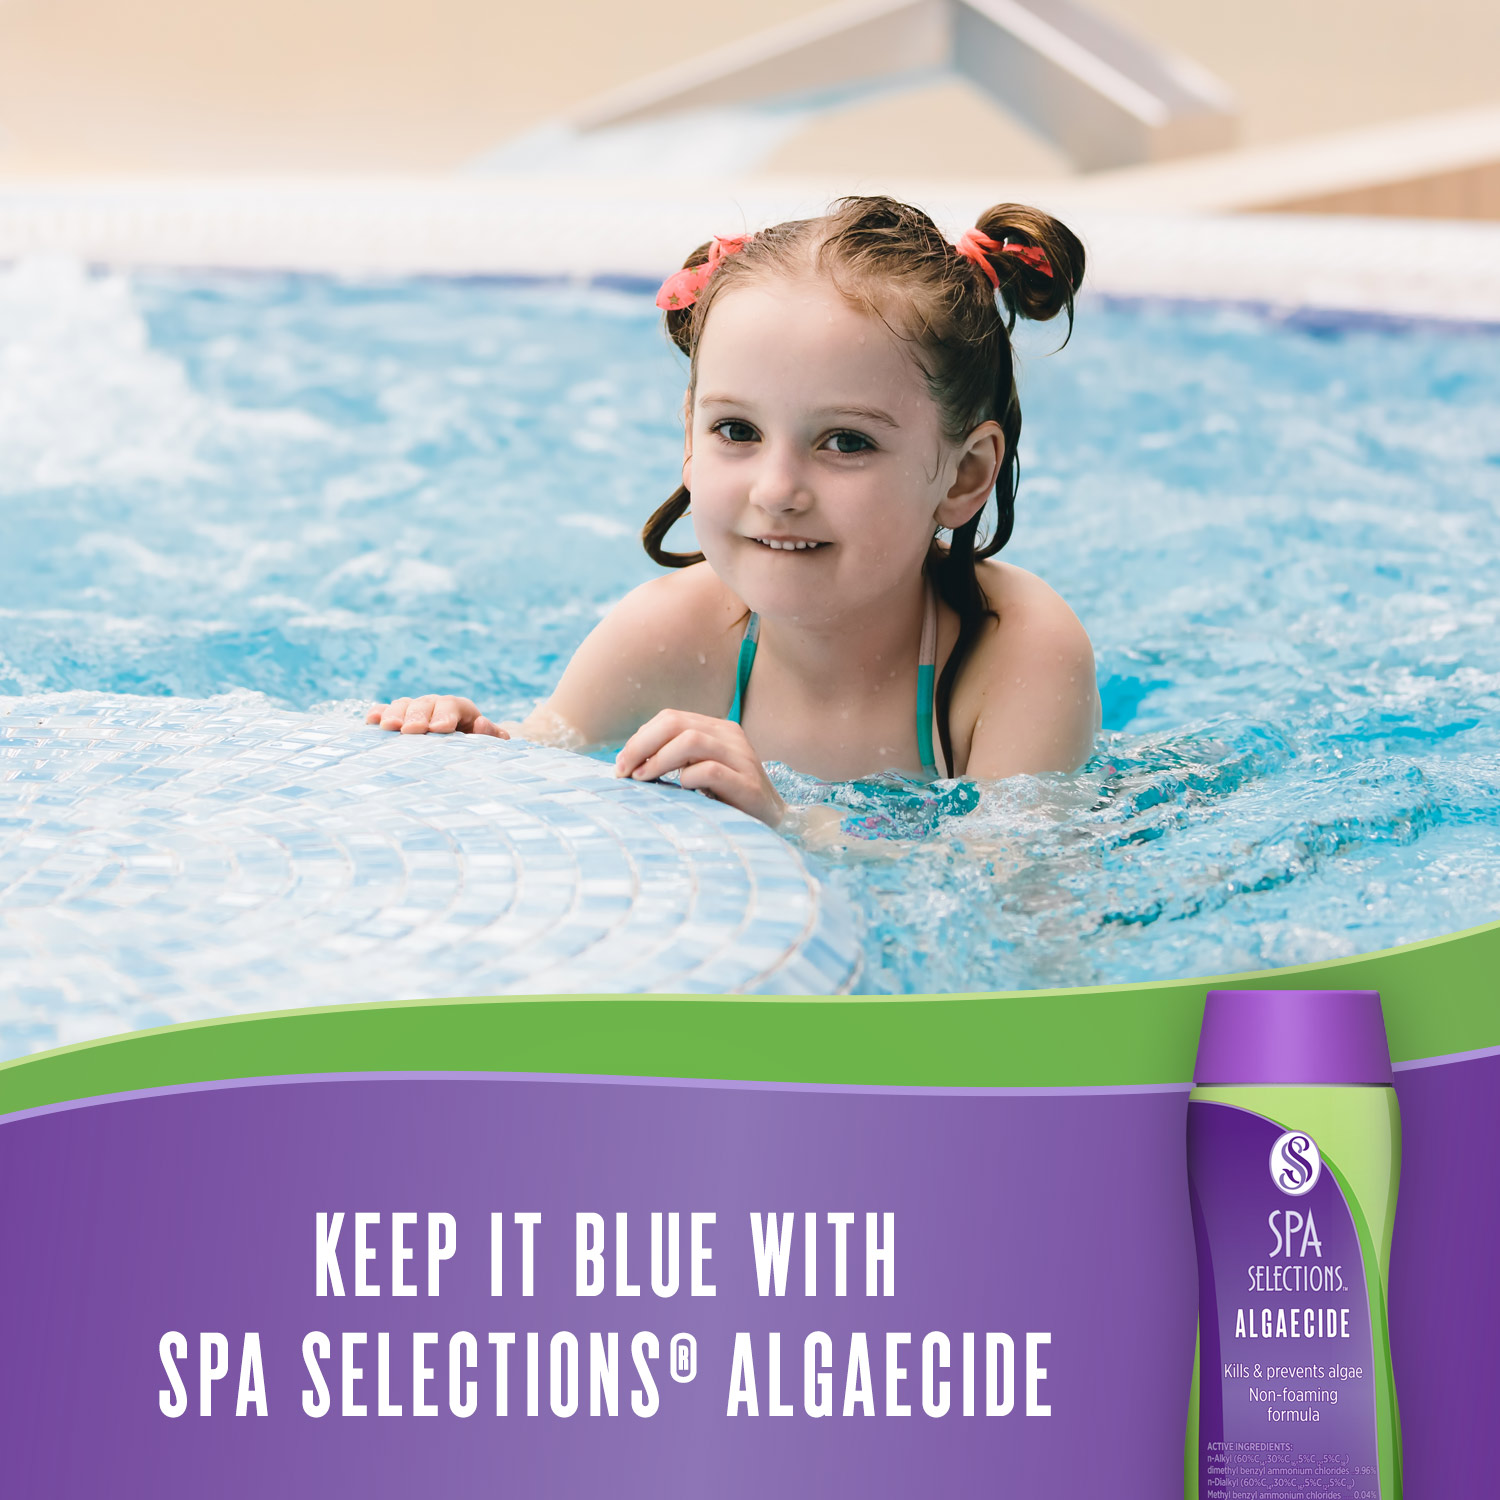 Little girl swimming in hot tub. Keep it blue with Spa Selections algaecide.